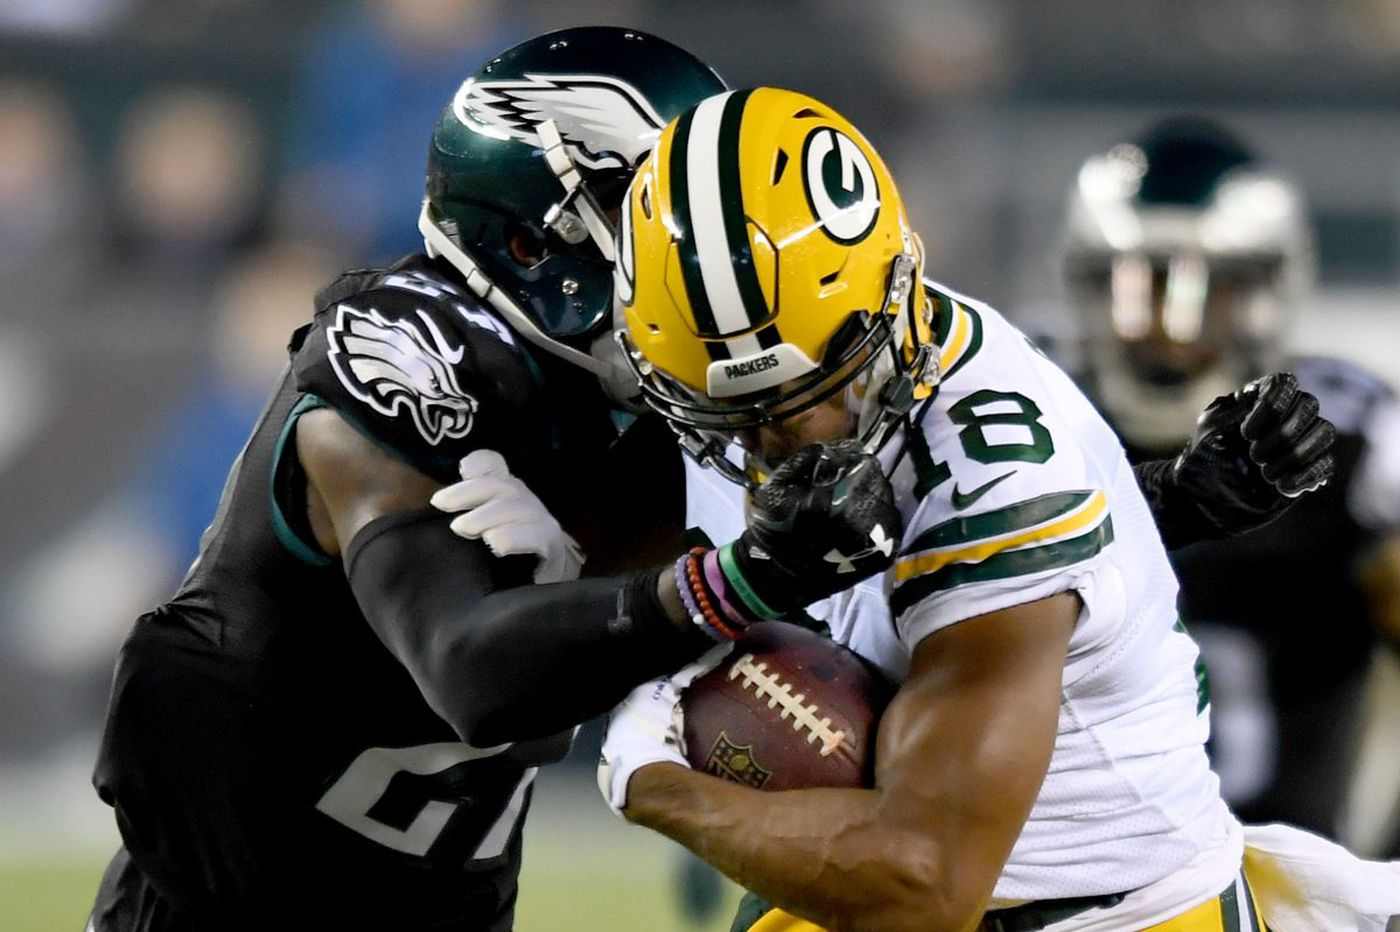 New CTE research on concussions rattles Eagles   Marcus Hayes